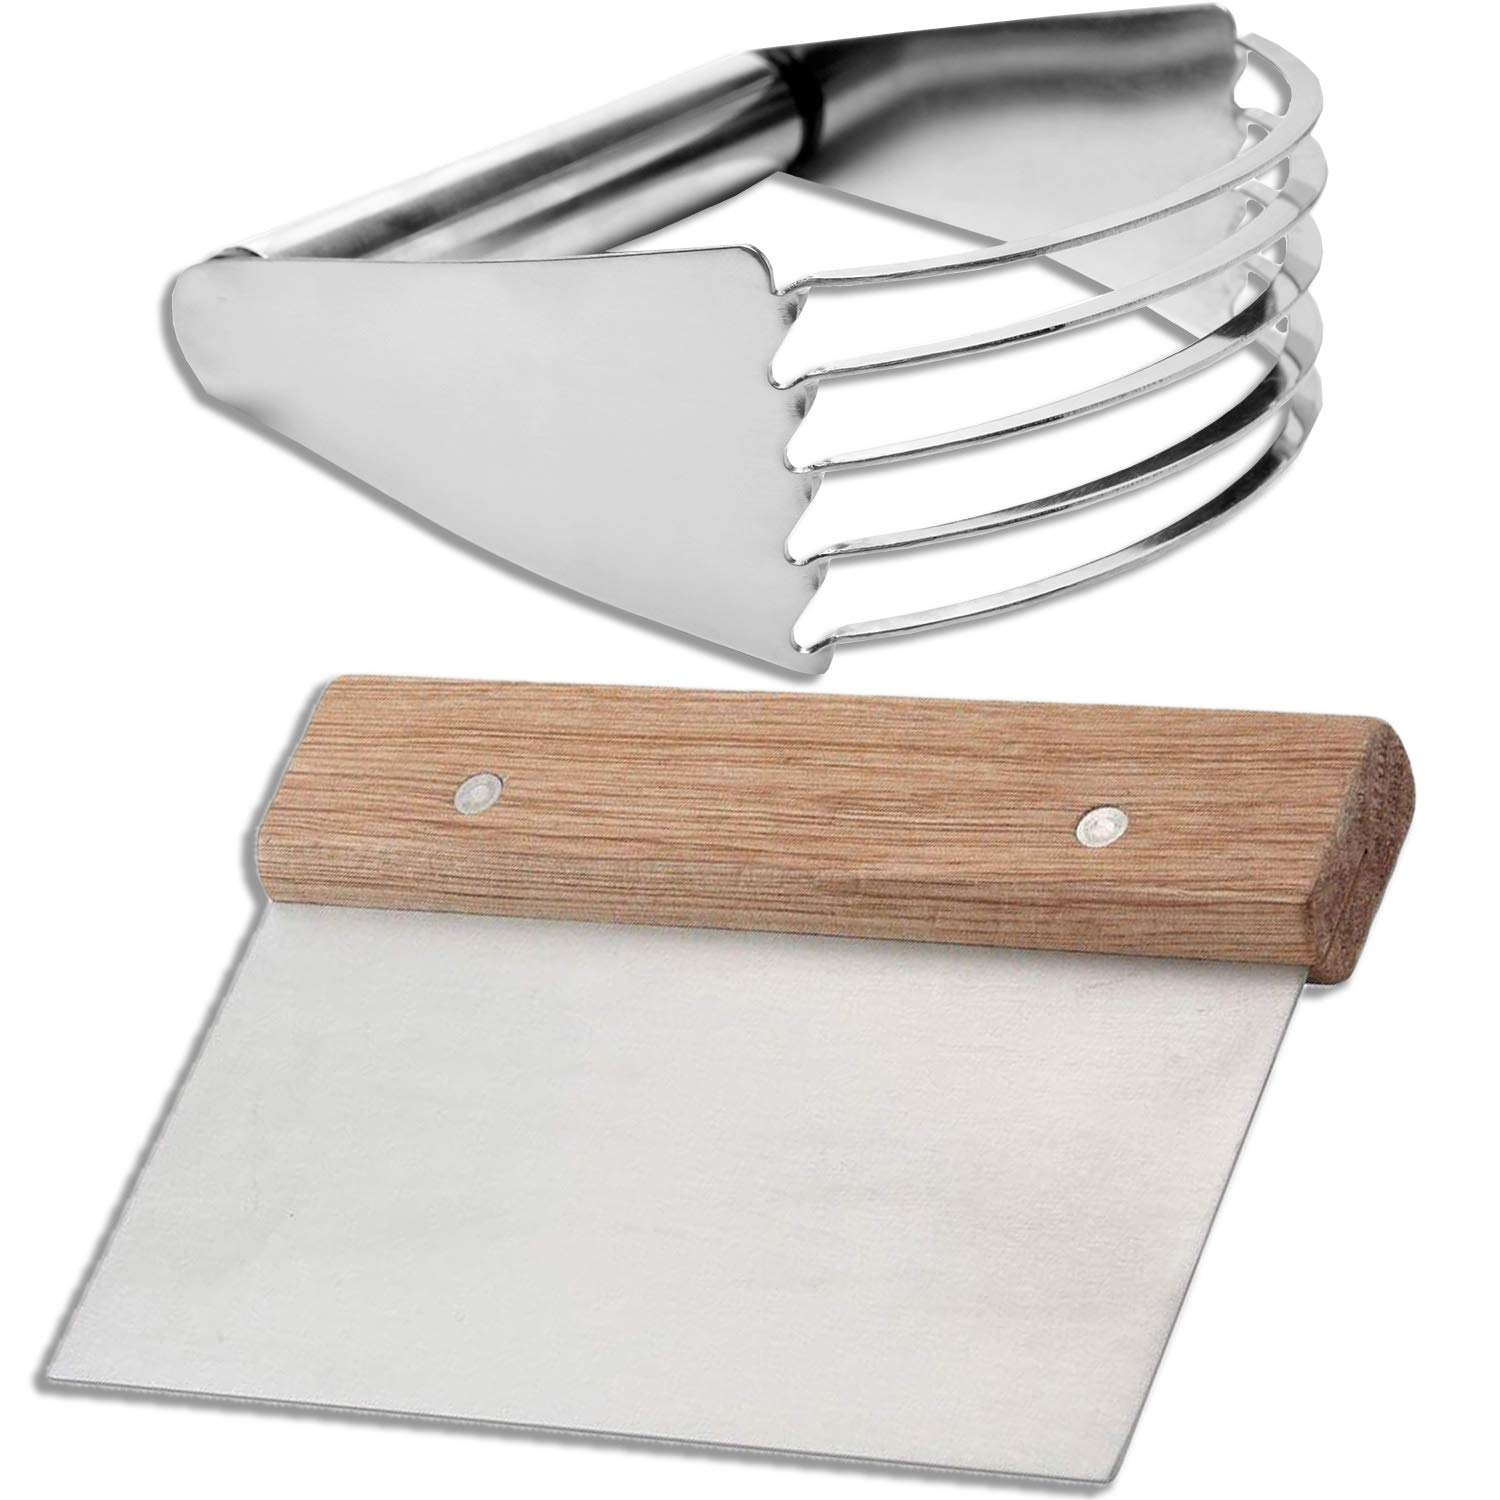 Pastry Cutter set - Dough Scraper and Blender Stainless Steel, Professional Quality Biscuit Blender, pie cutter, Heavy Duty Kitchen Baking Tools, for commercial and home use. by HeroFiber